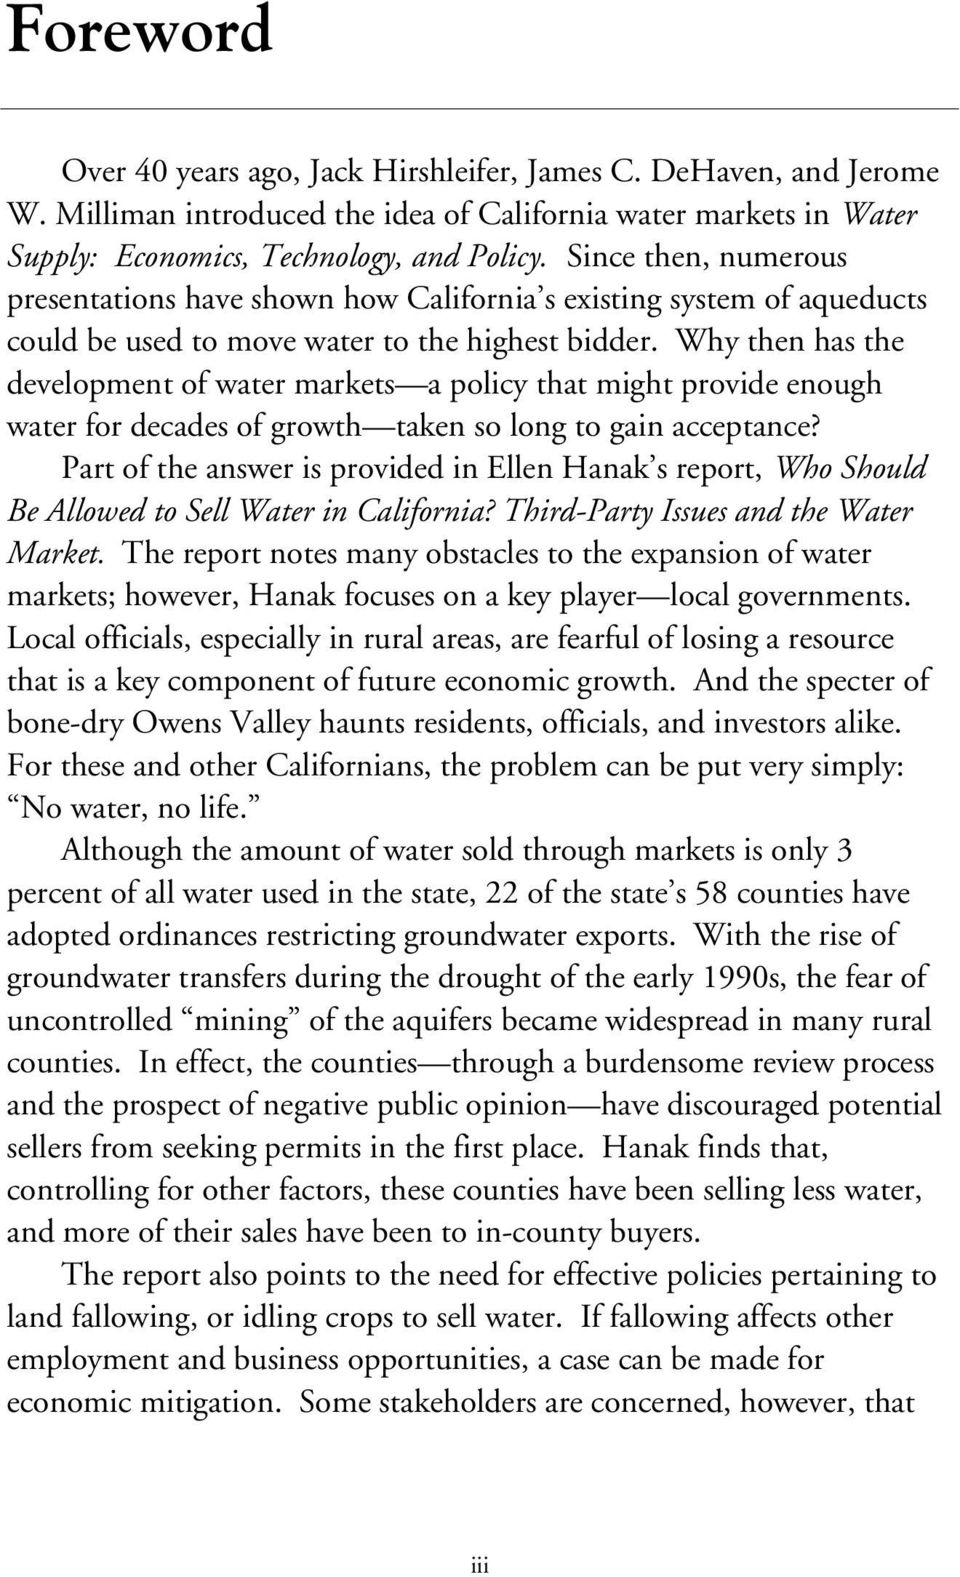 Why then has the development of water markets a policy that might provide enough water for decades of growth taken so long to gain acceptance?